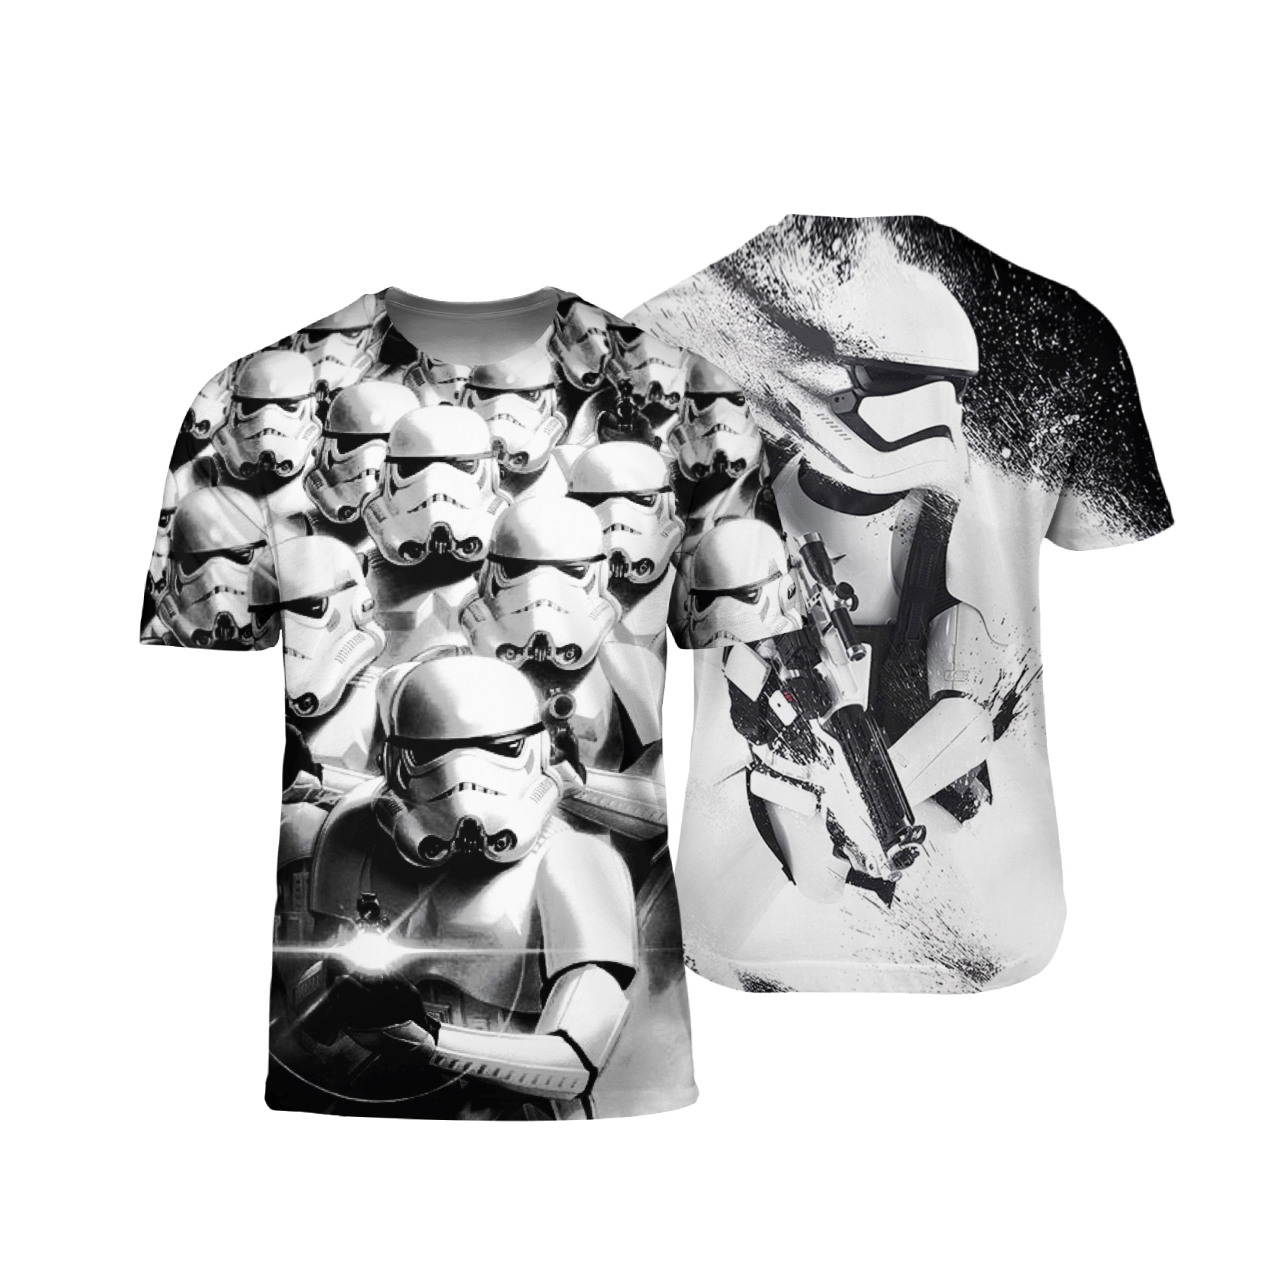 Stormtroopers Star Wars black and white 3D T Shirt